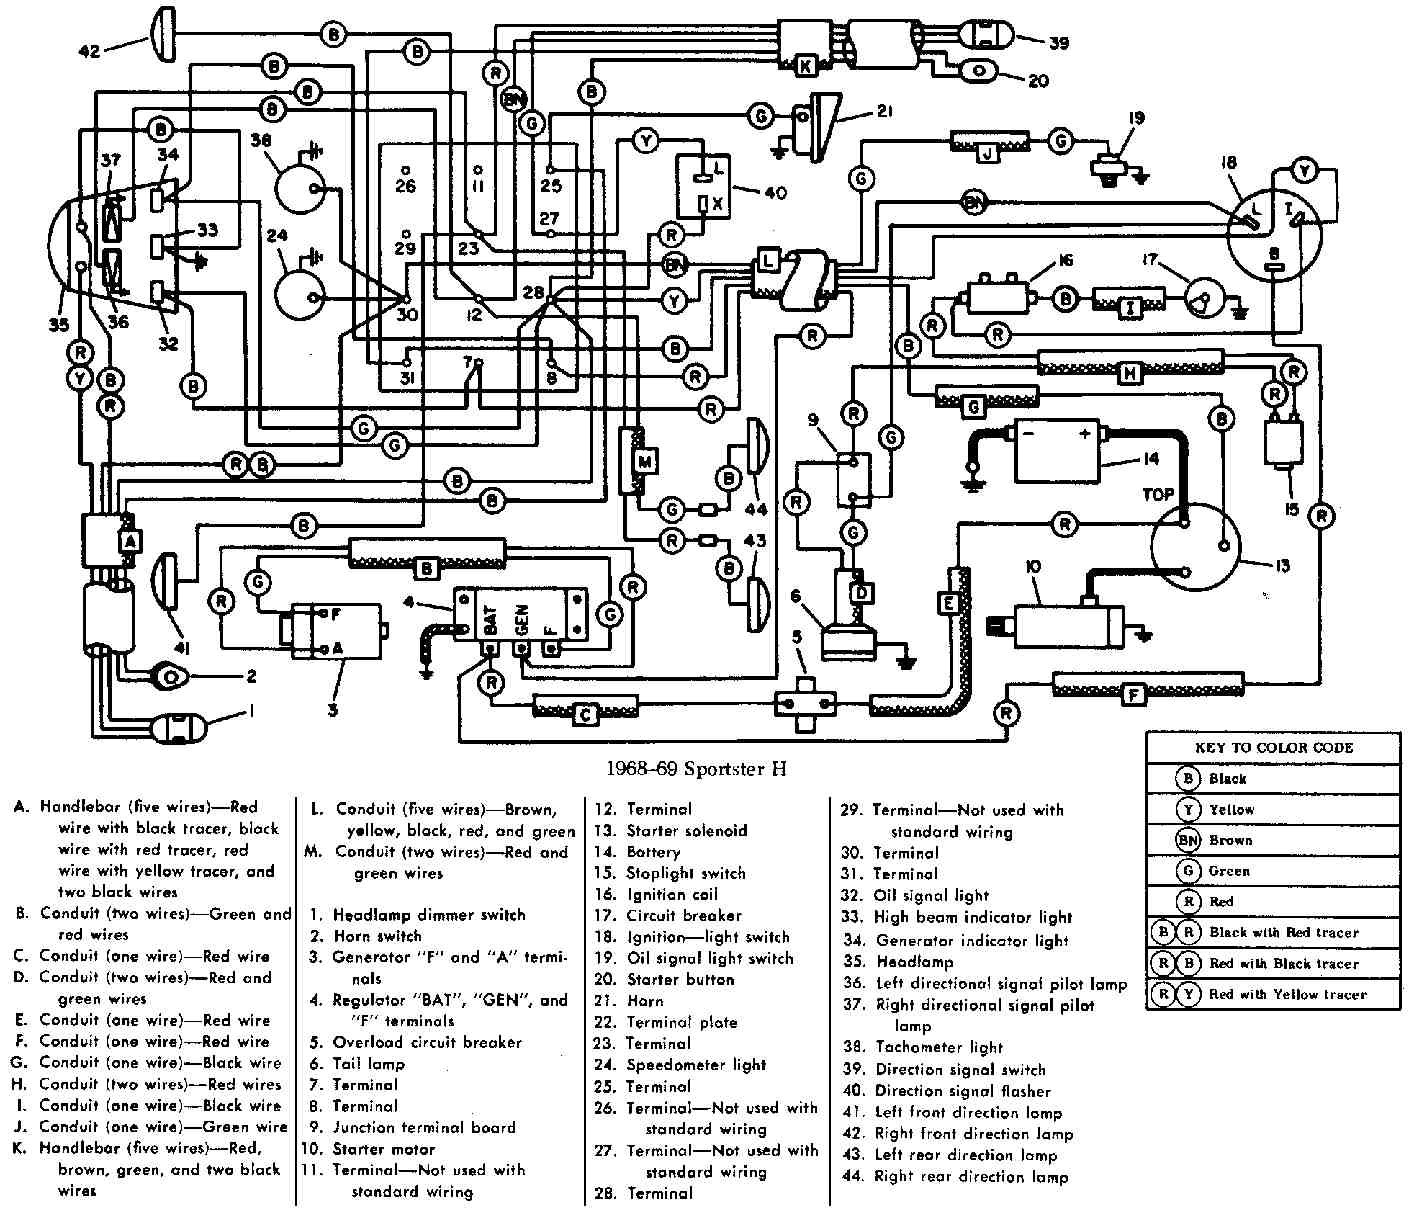 electrical wiring diagram of 1968 1969 harley davidson sportster